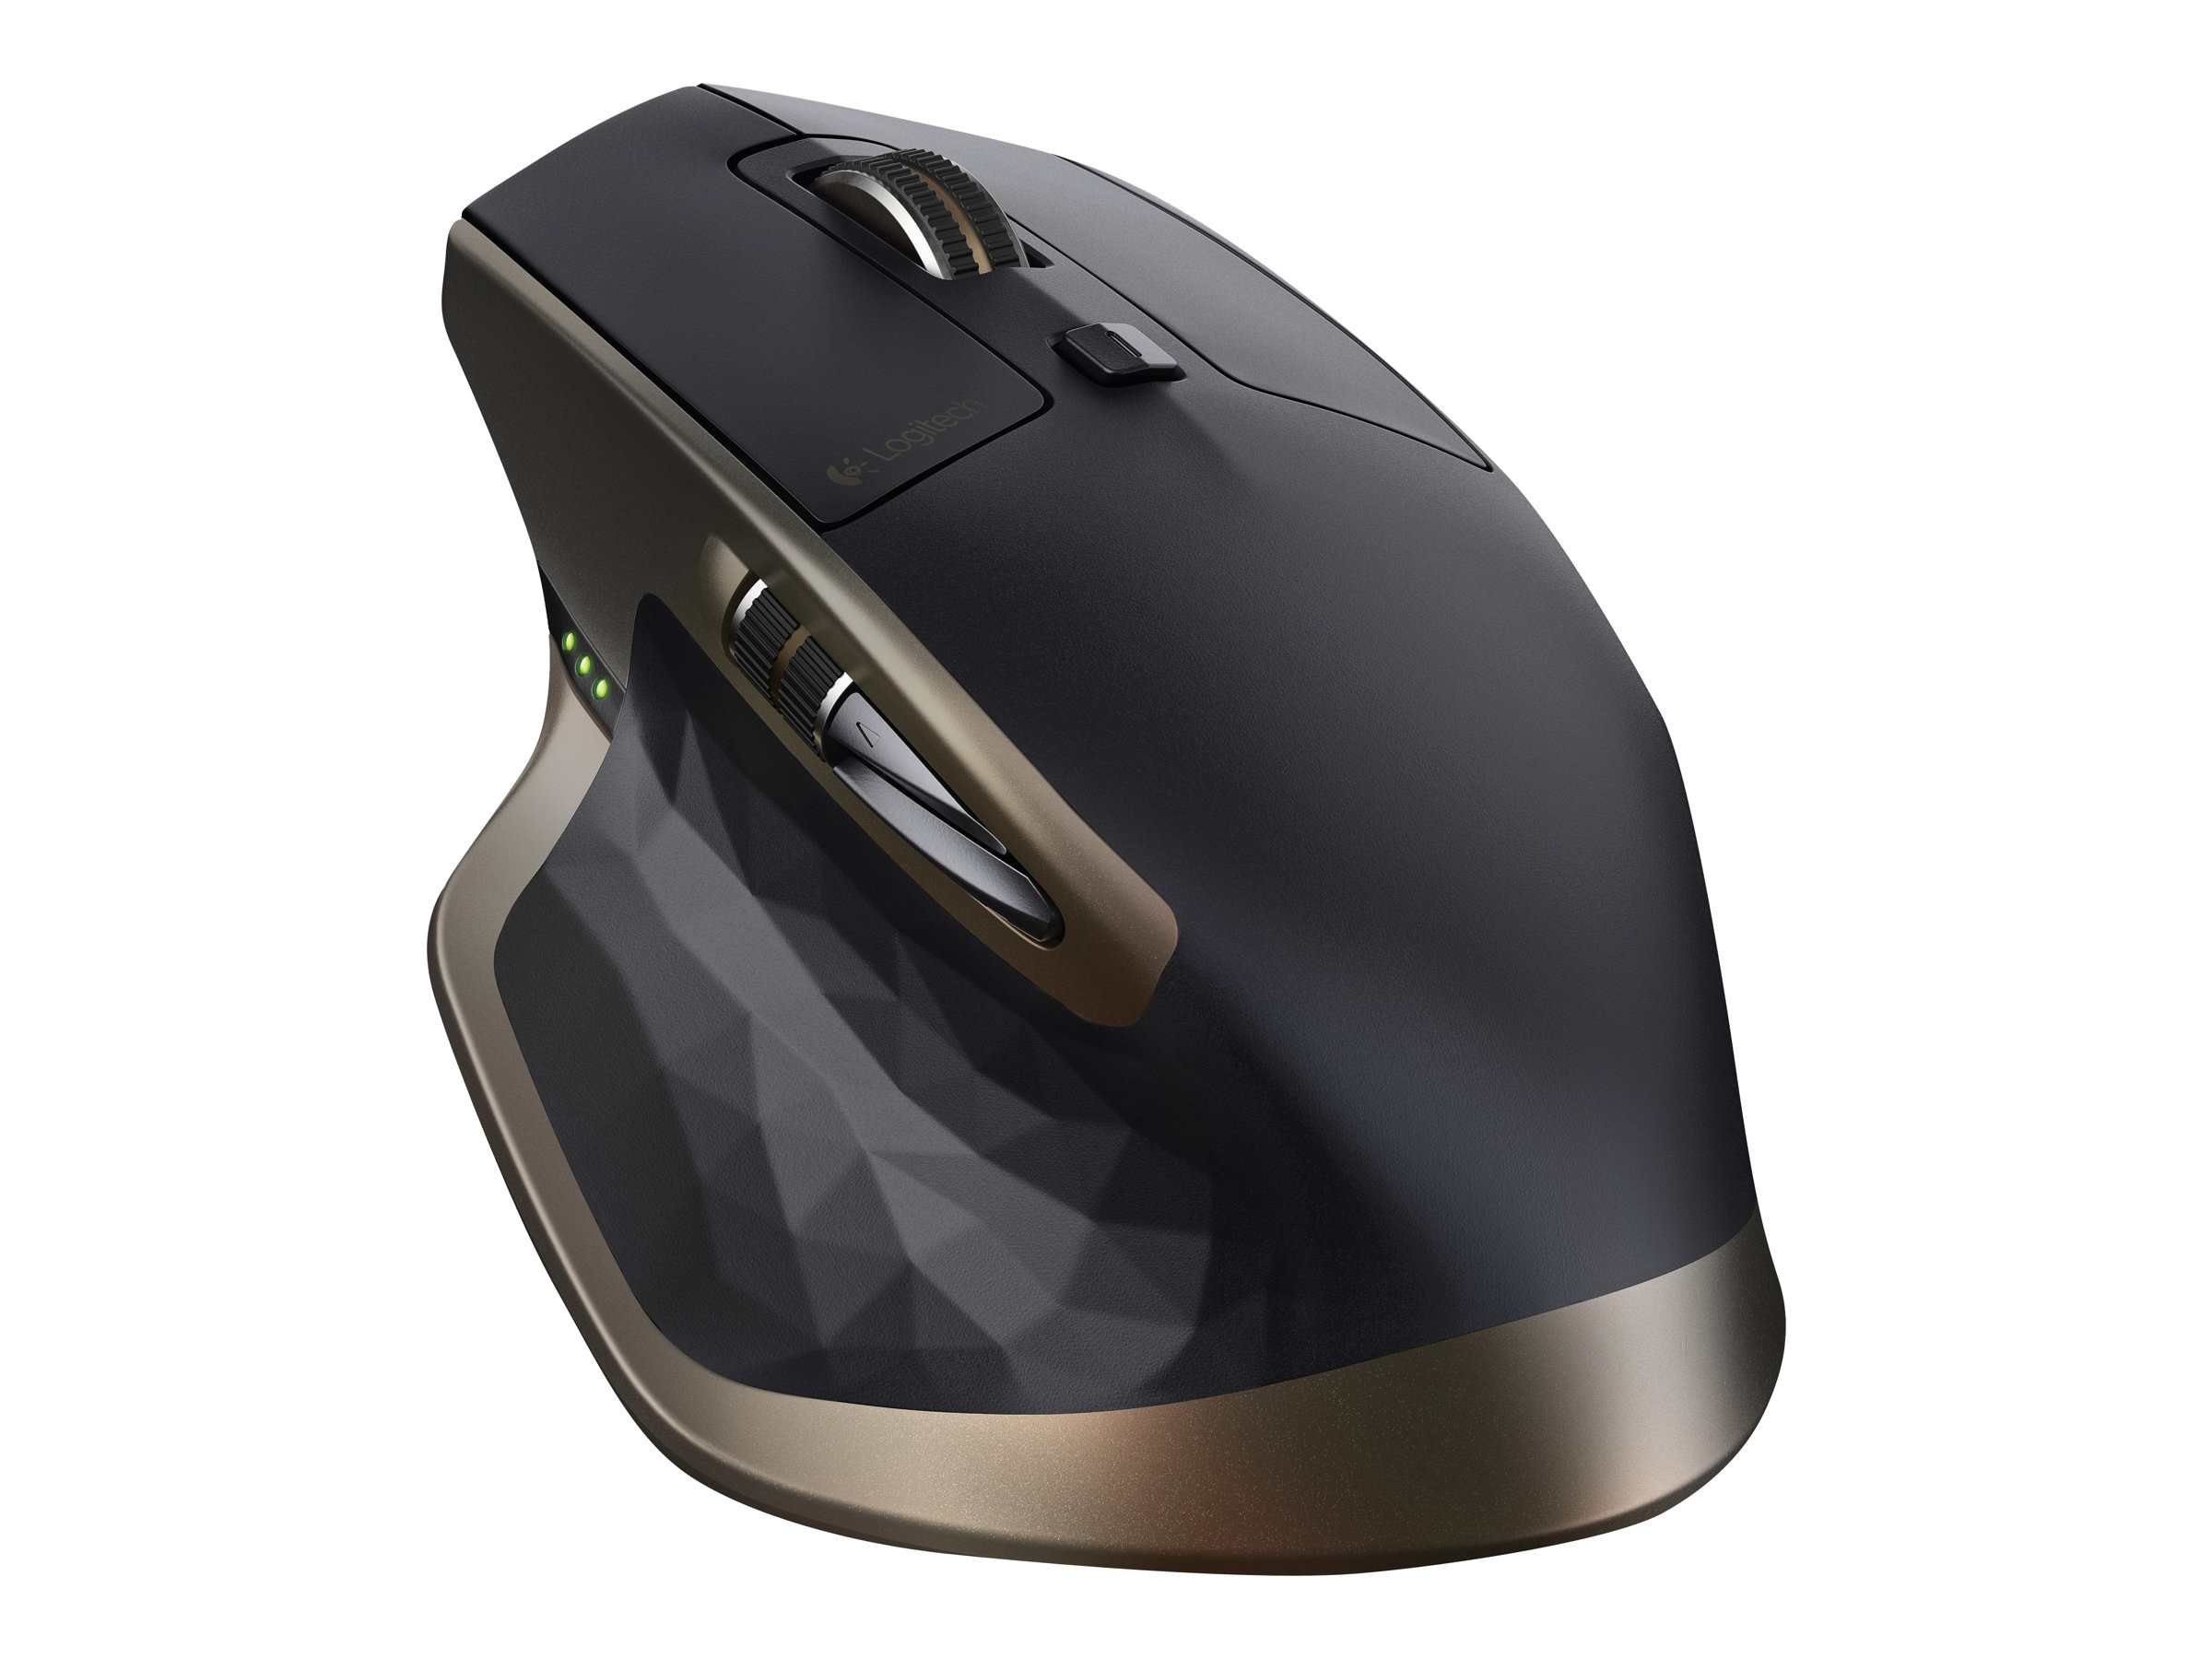 Logitech MX Master Wireless Mouse, 910-004337, 18954486, Mice & Cursor Control Devices